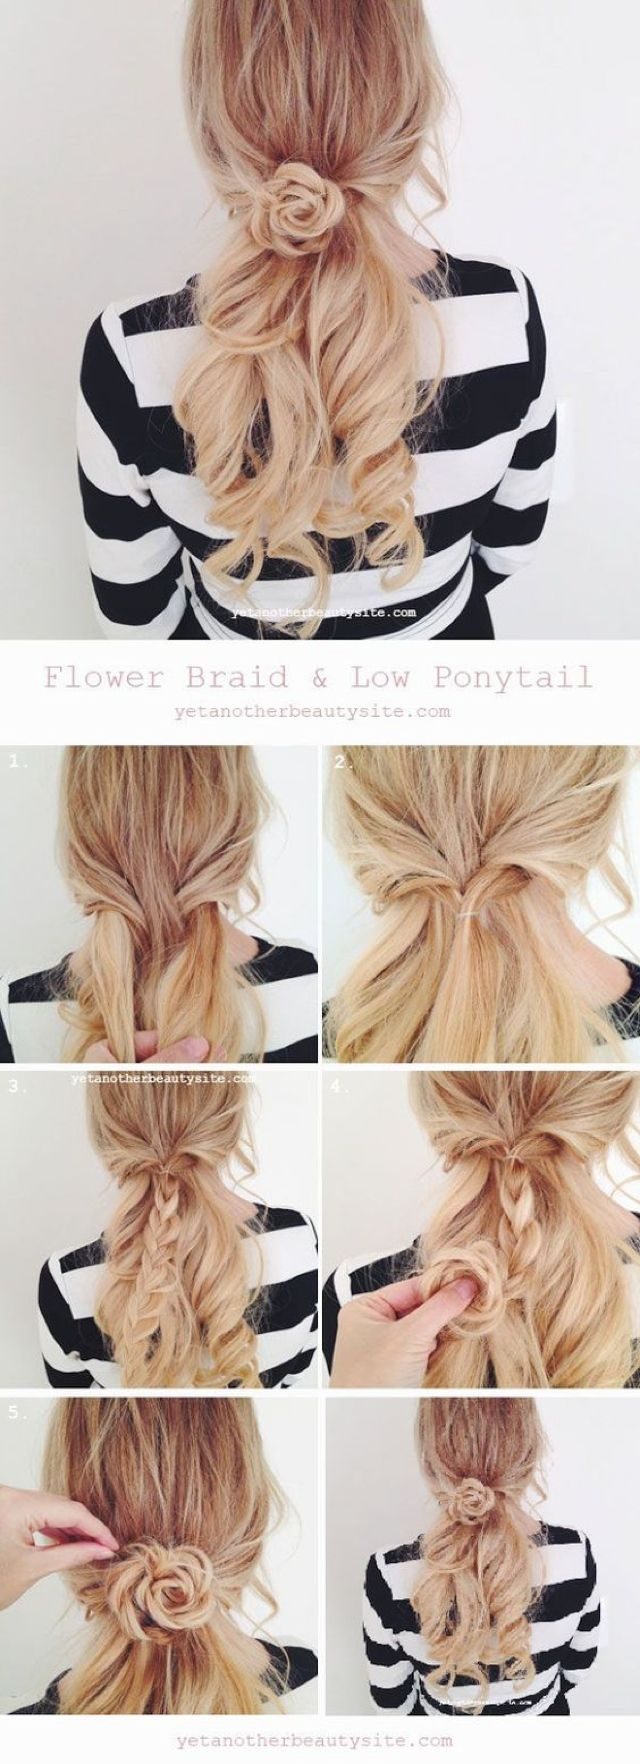 Cool Easy Hairstyles Ideas The Rose Braid Video The Rose Braid Looks Way More Complicated Than It Actually I Hair Styles Long Hair Styles Spring Hairstyles